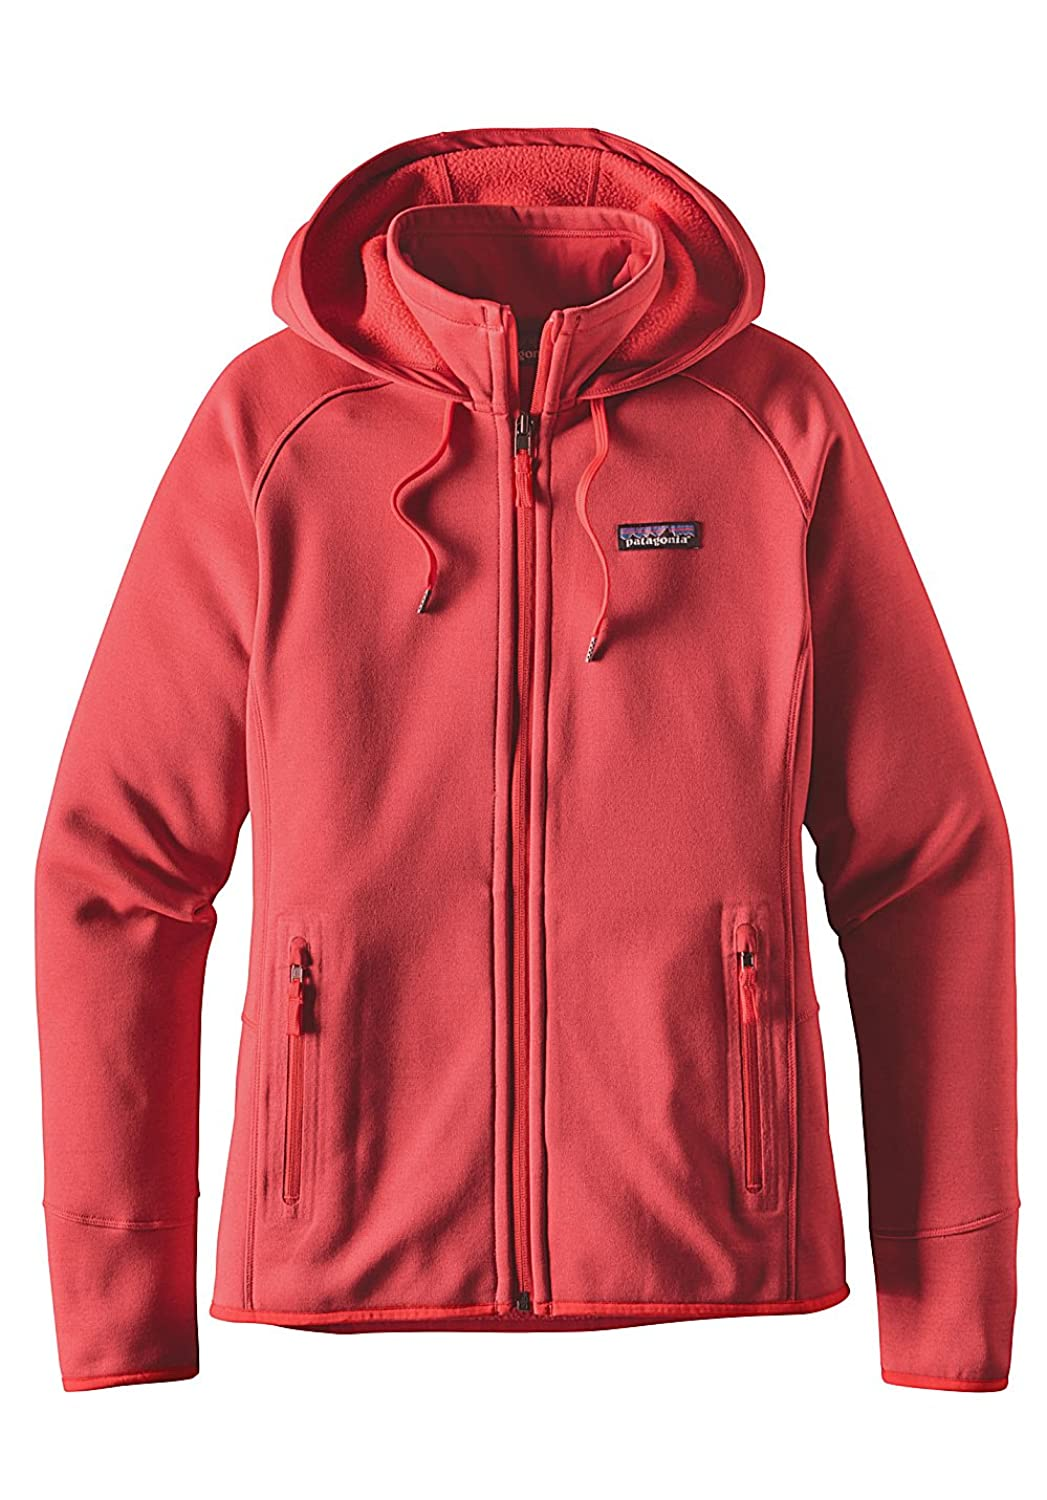 Patagonia Tech Fleece Hoody Jacket Women - Kapuzen Fleecejacke